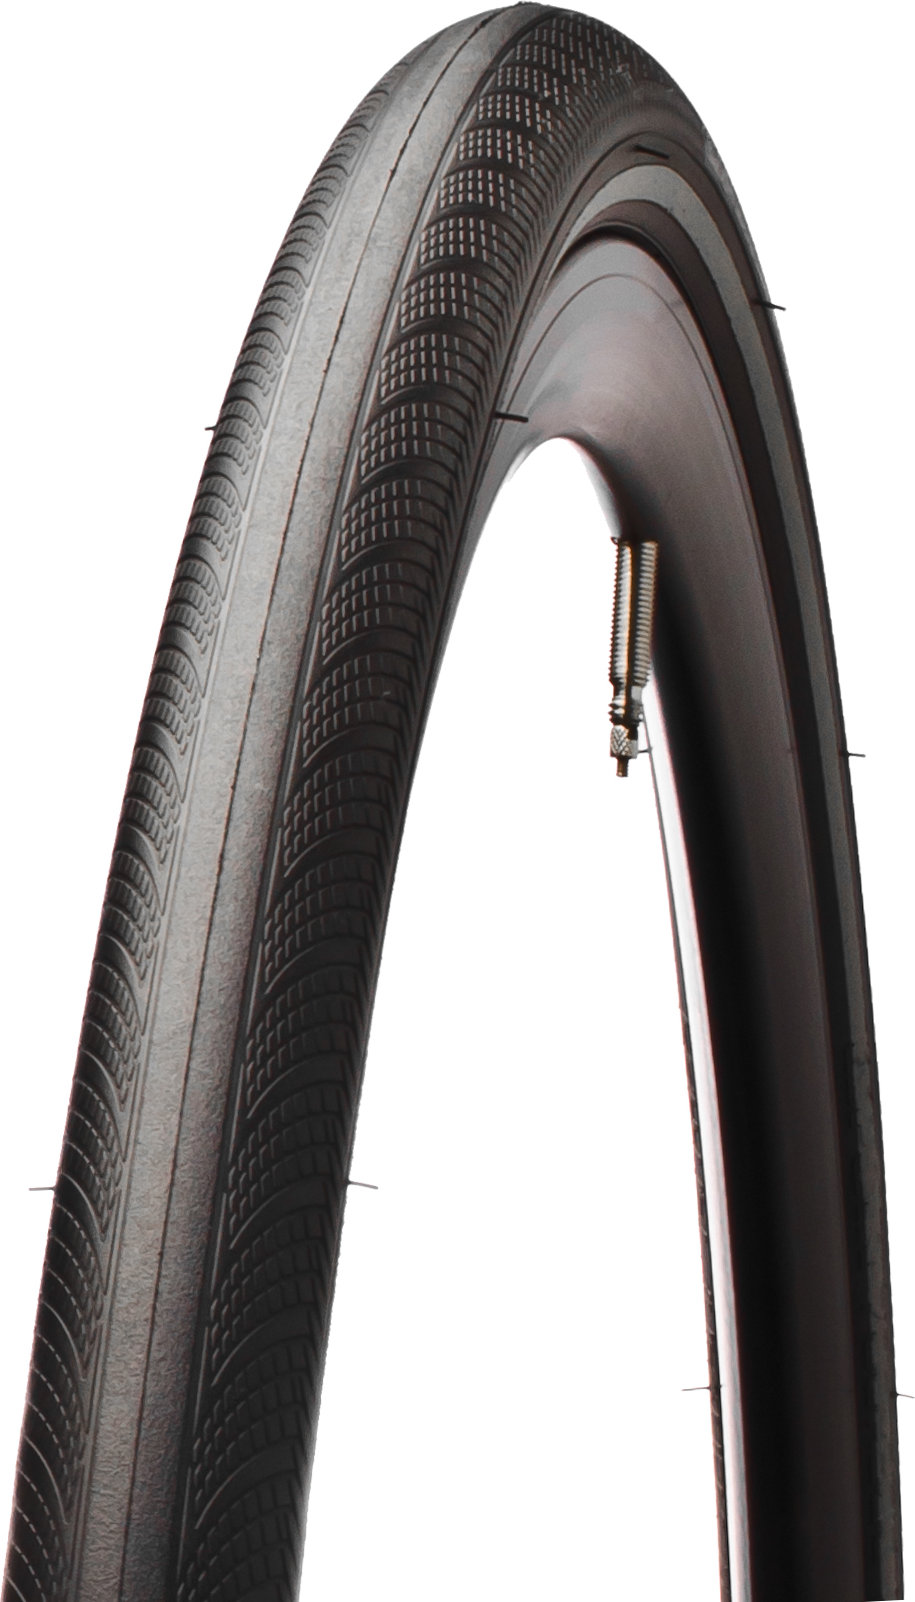 SPECIALIZED ESPOIR SPORT REFLECT TIRE 700X30C - Alpha Bikes